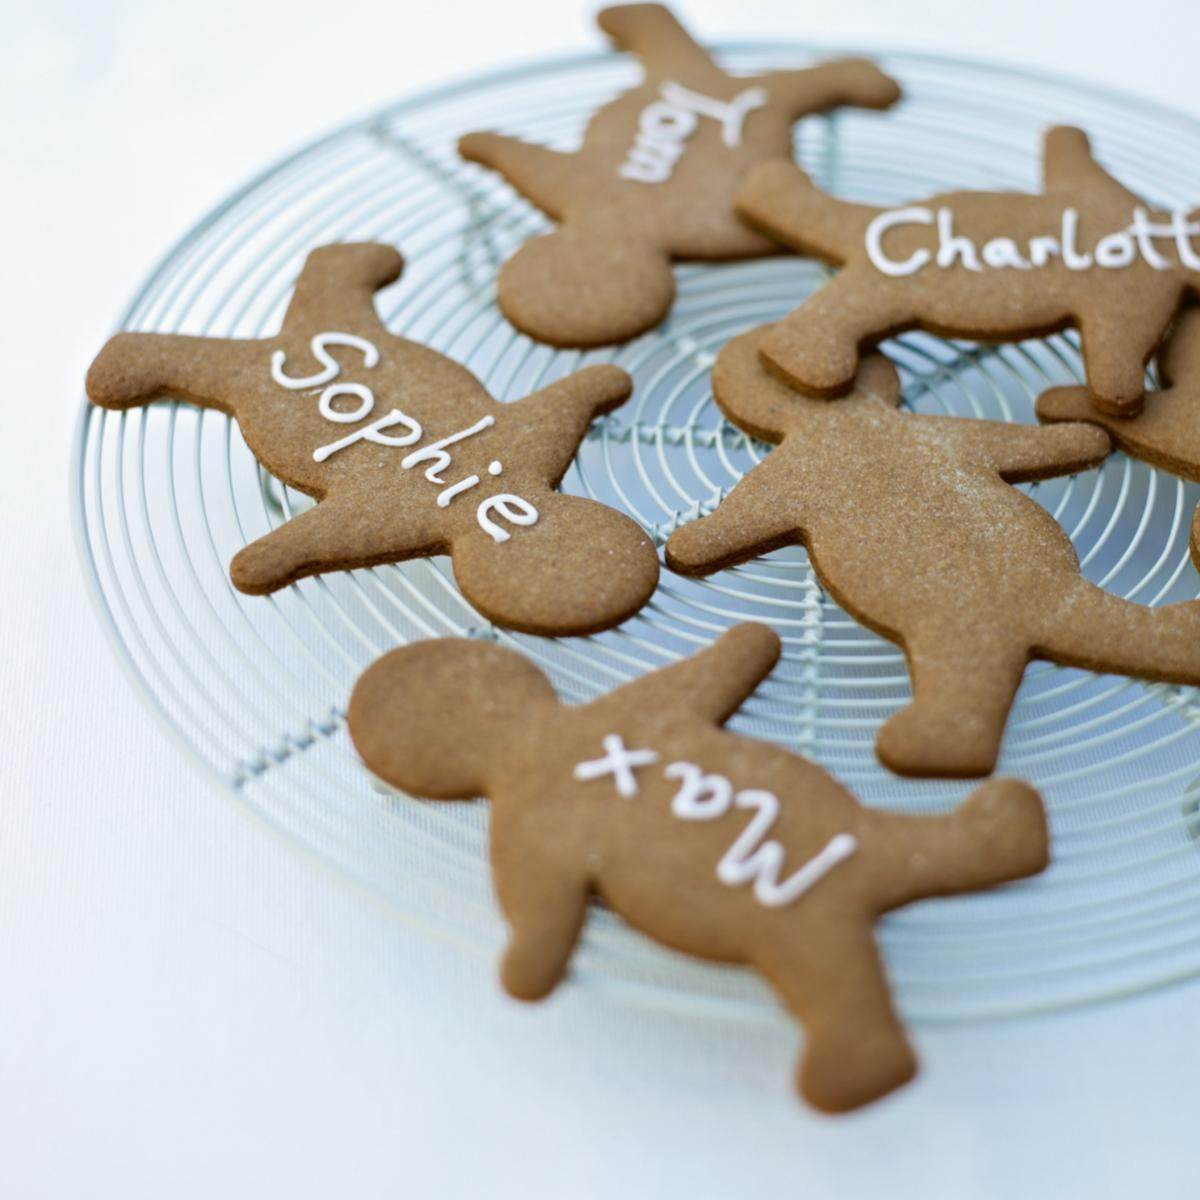 A picture of Delia's Gingerbread Men recipe